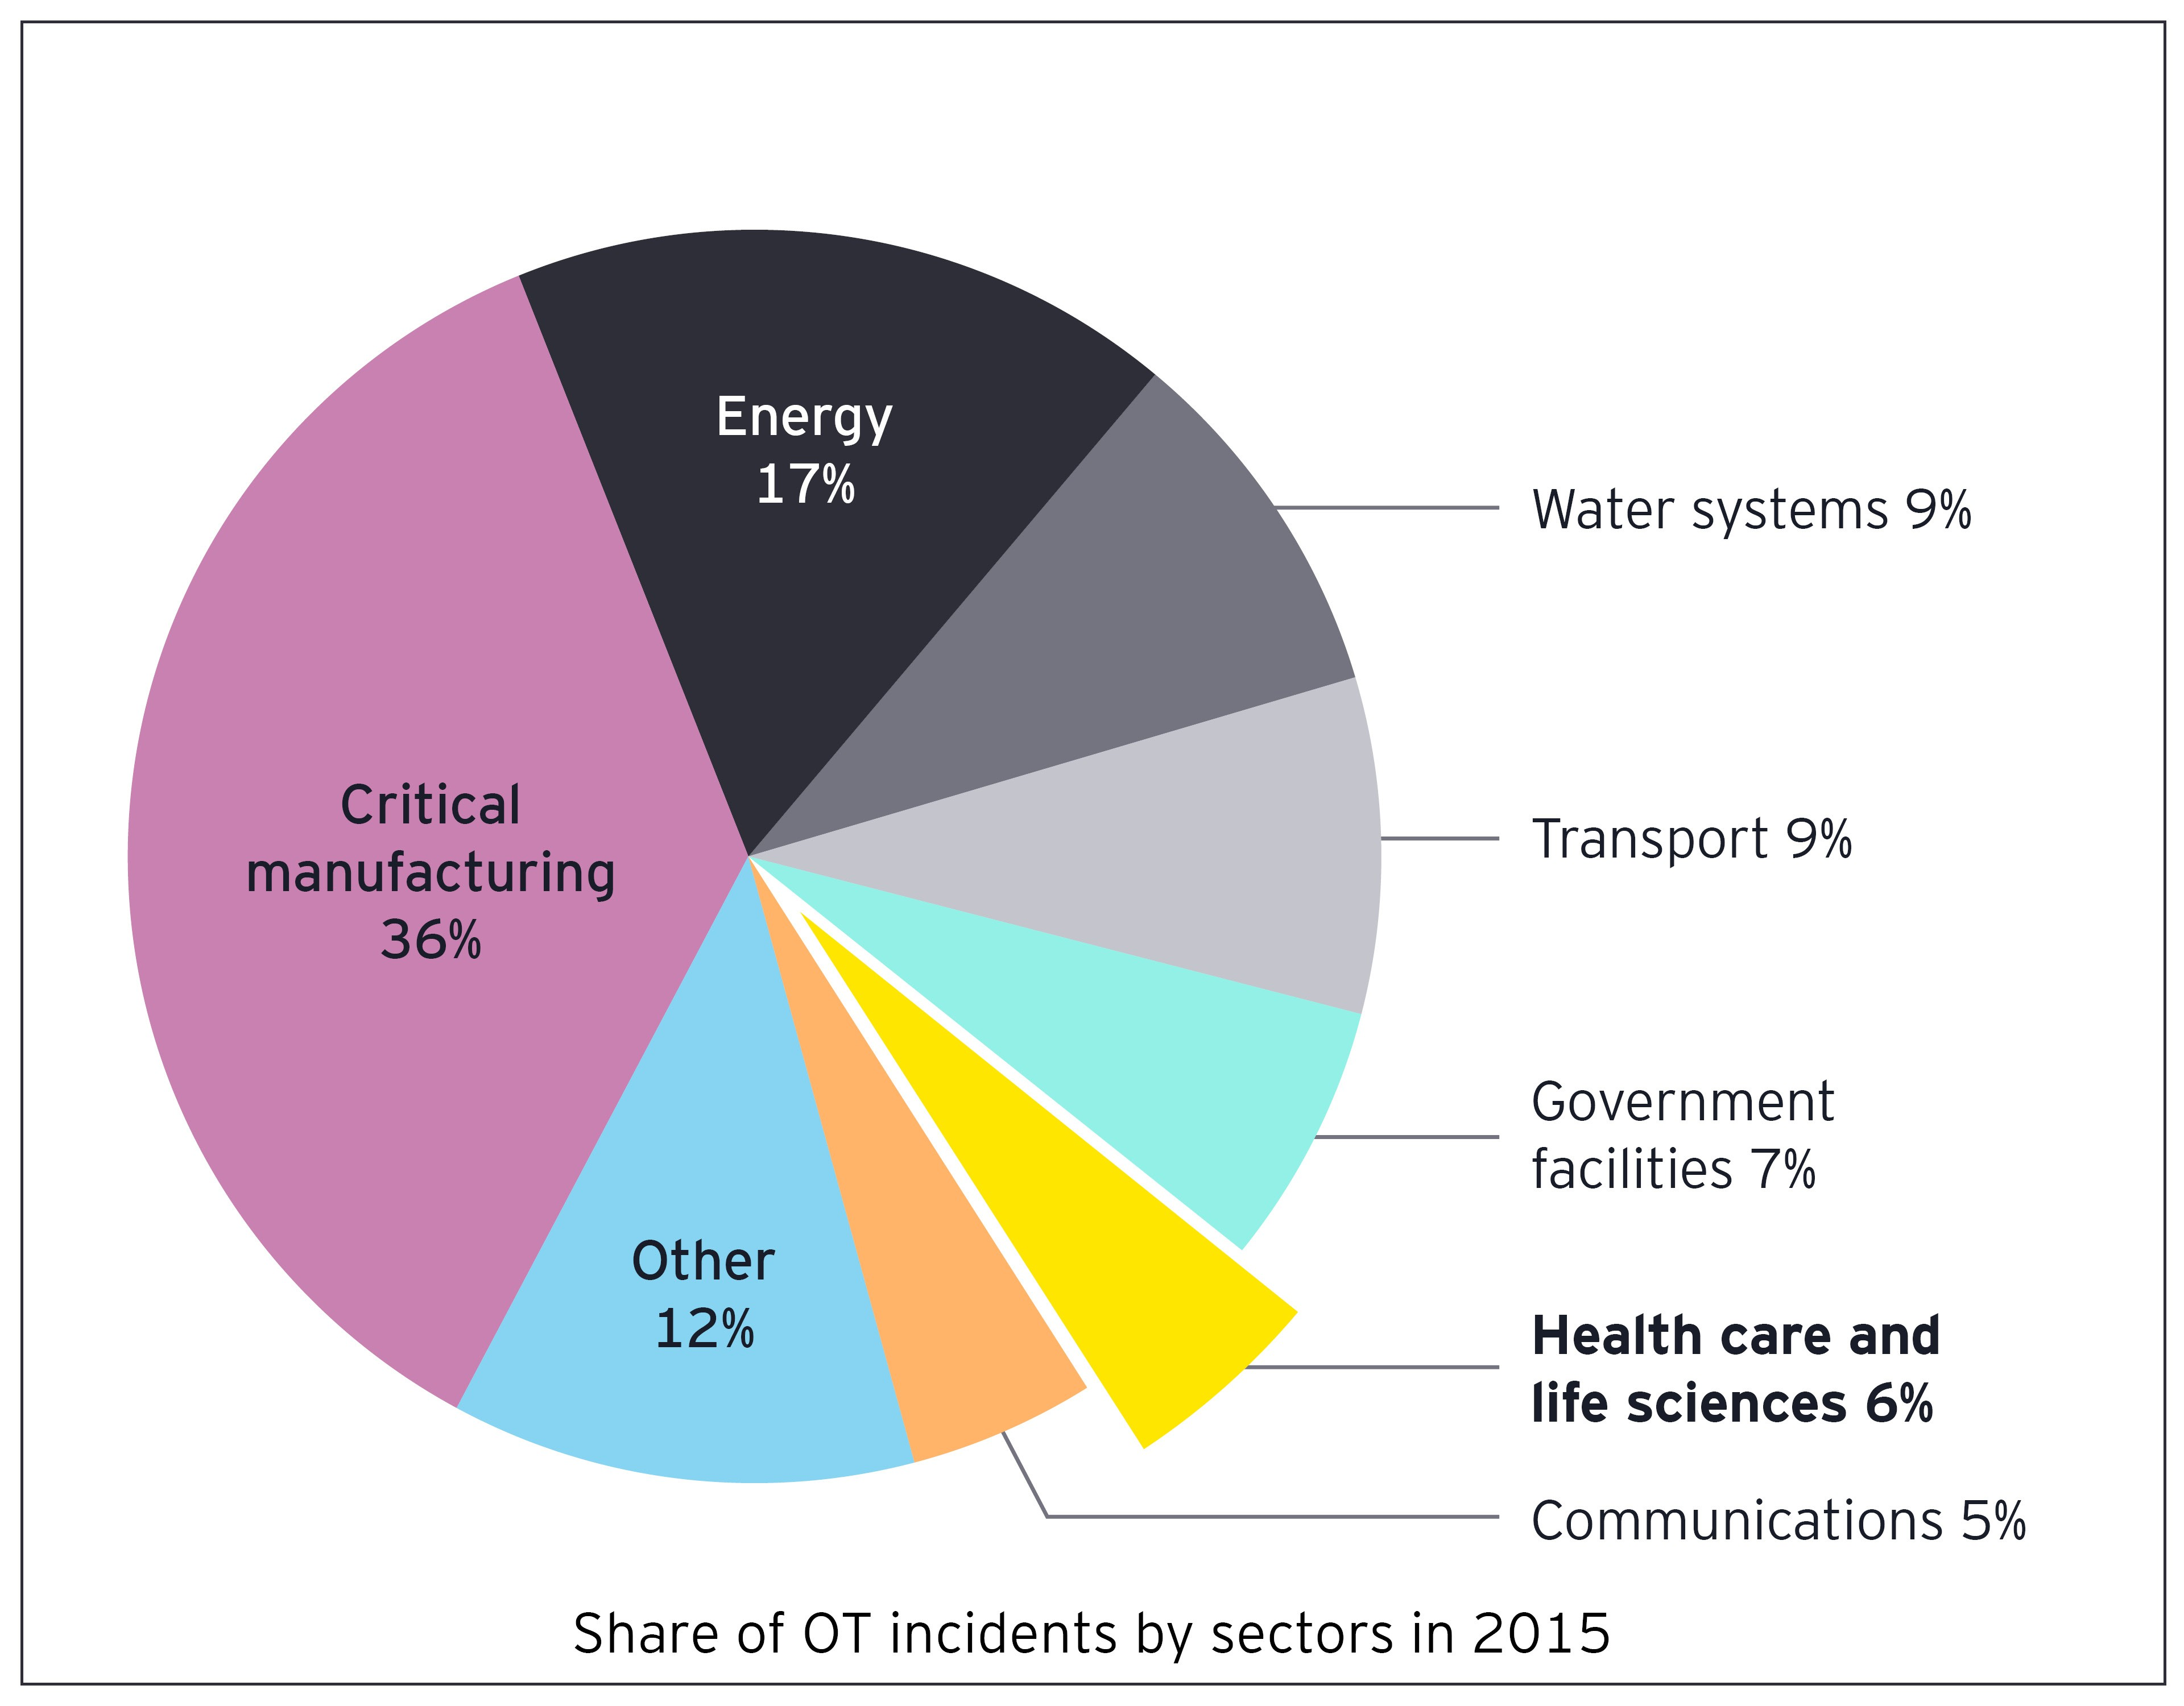 Share of OT incidents by sectors in 2015